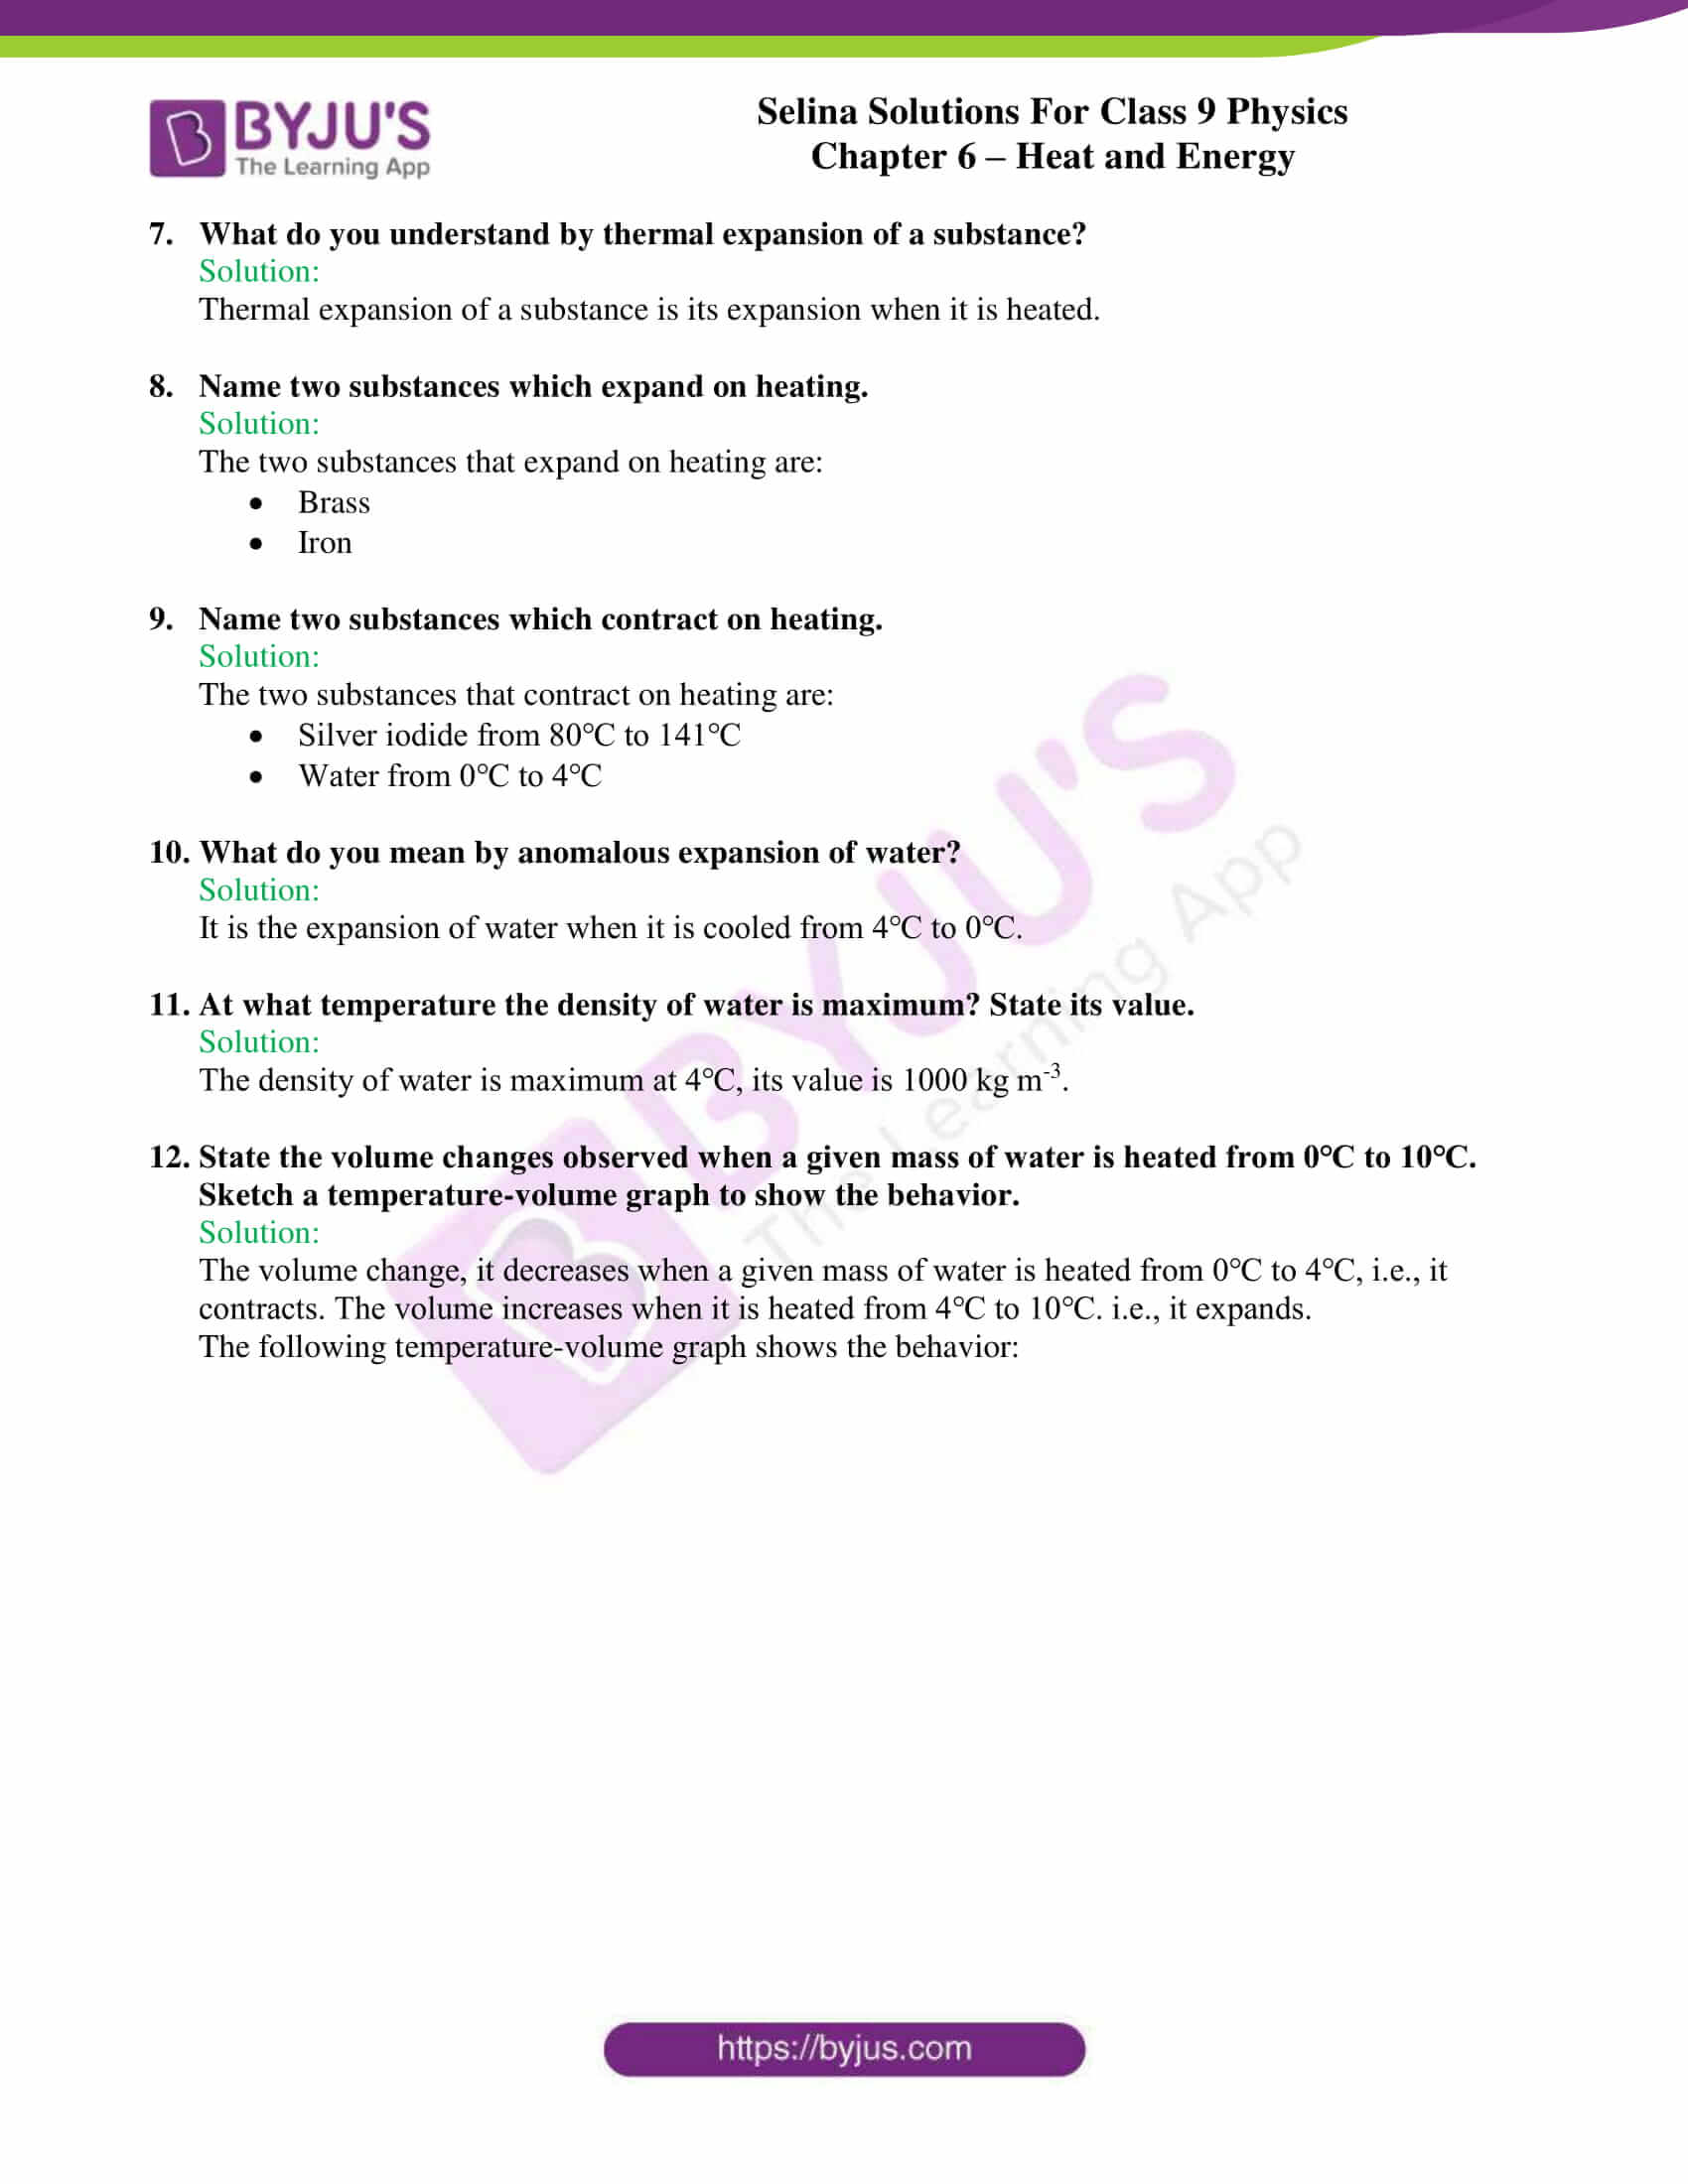 selina solutions class 9 physics chapter 6 Heat and Energy part 02